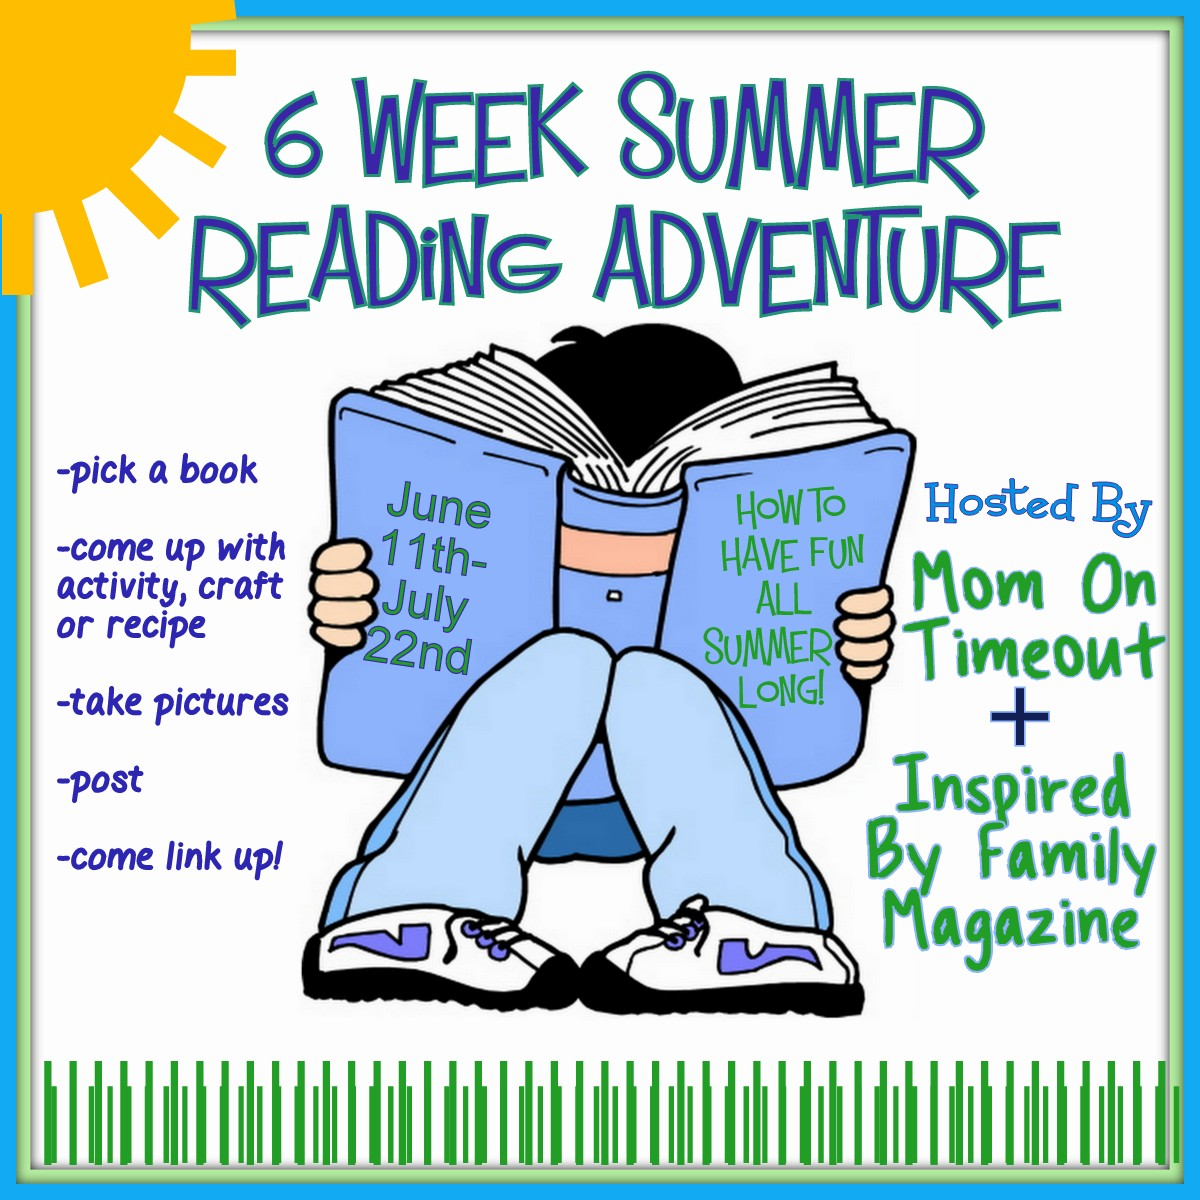 Summer Reading Adventure Coming Soon